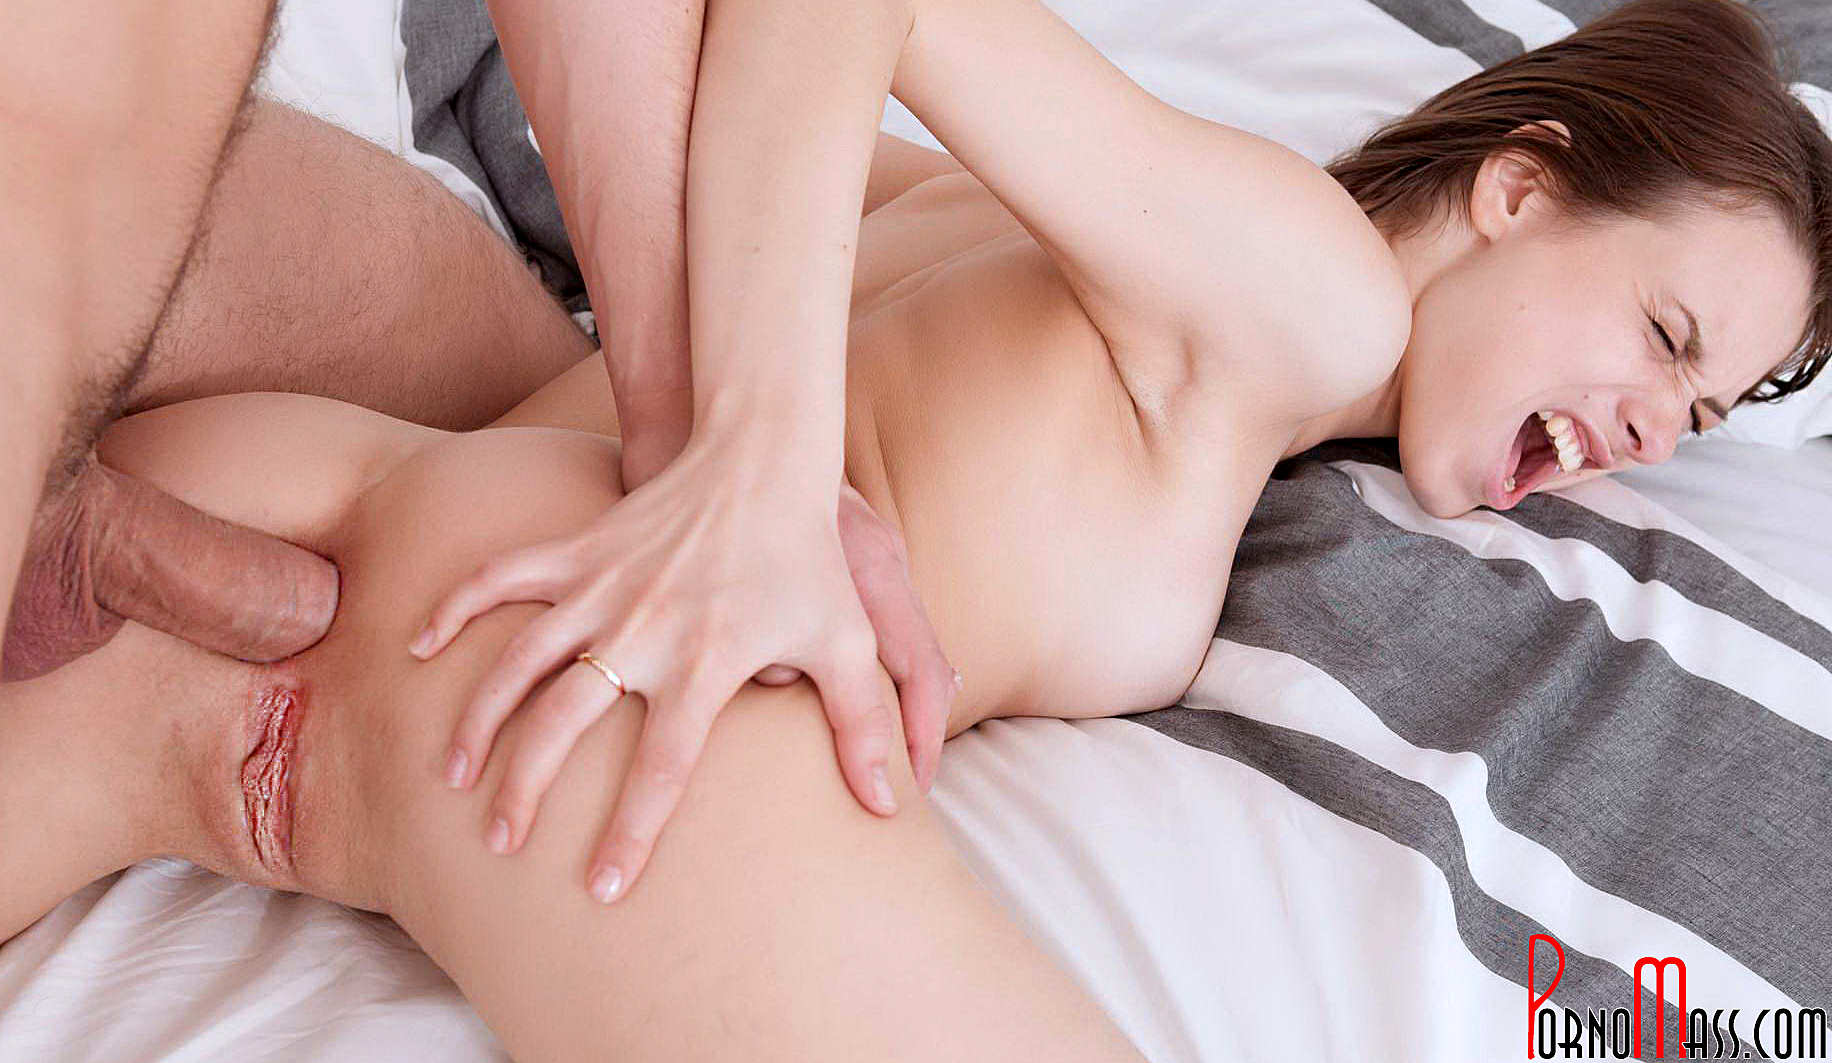 porno buitensex thai massage erotic